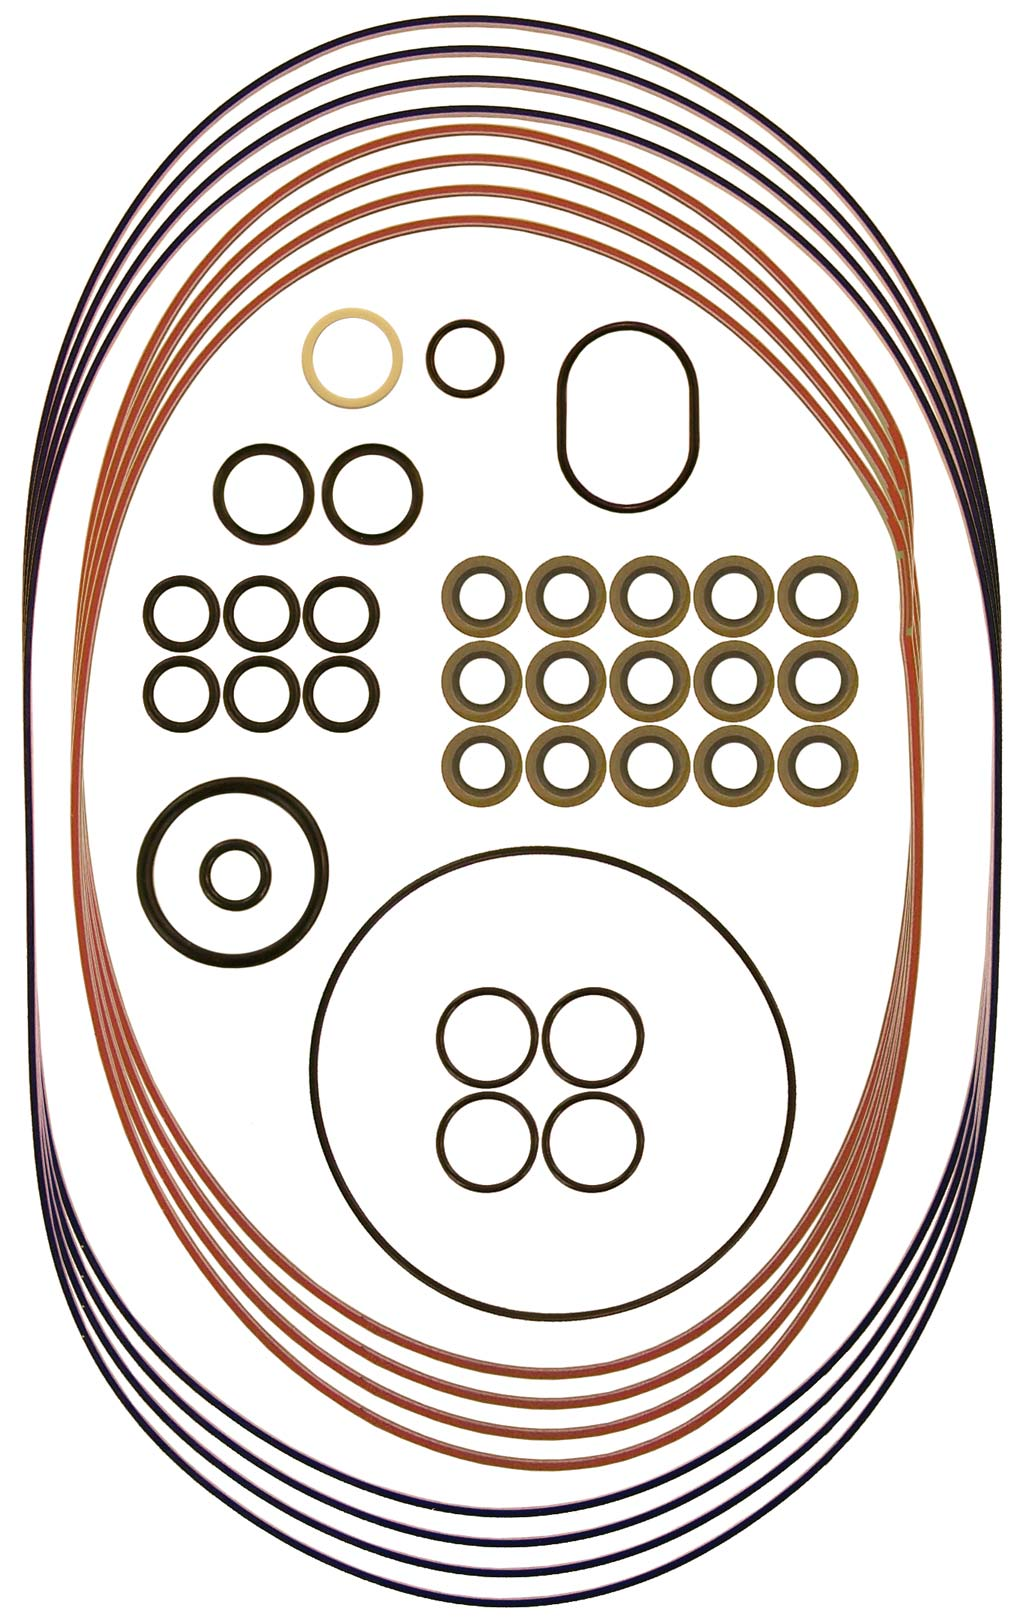 89-92 N/A Rx7 O-Ring Kit (N350-10-S60)